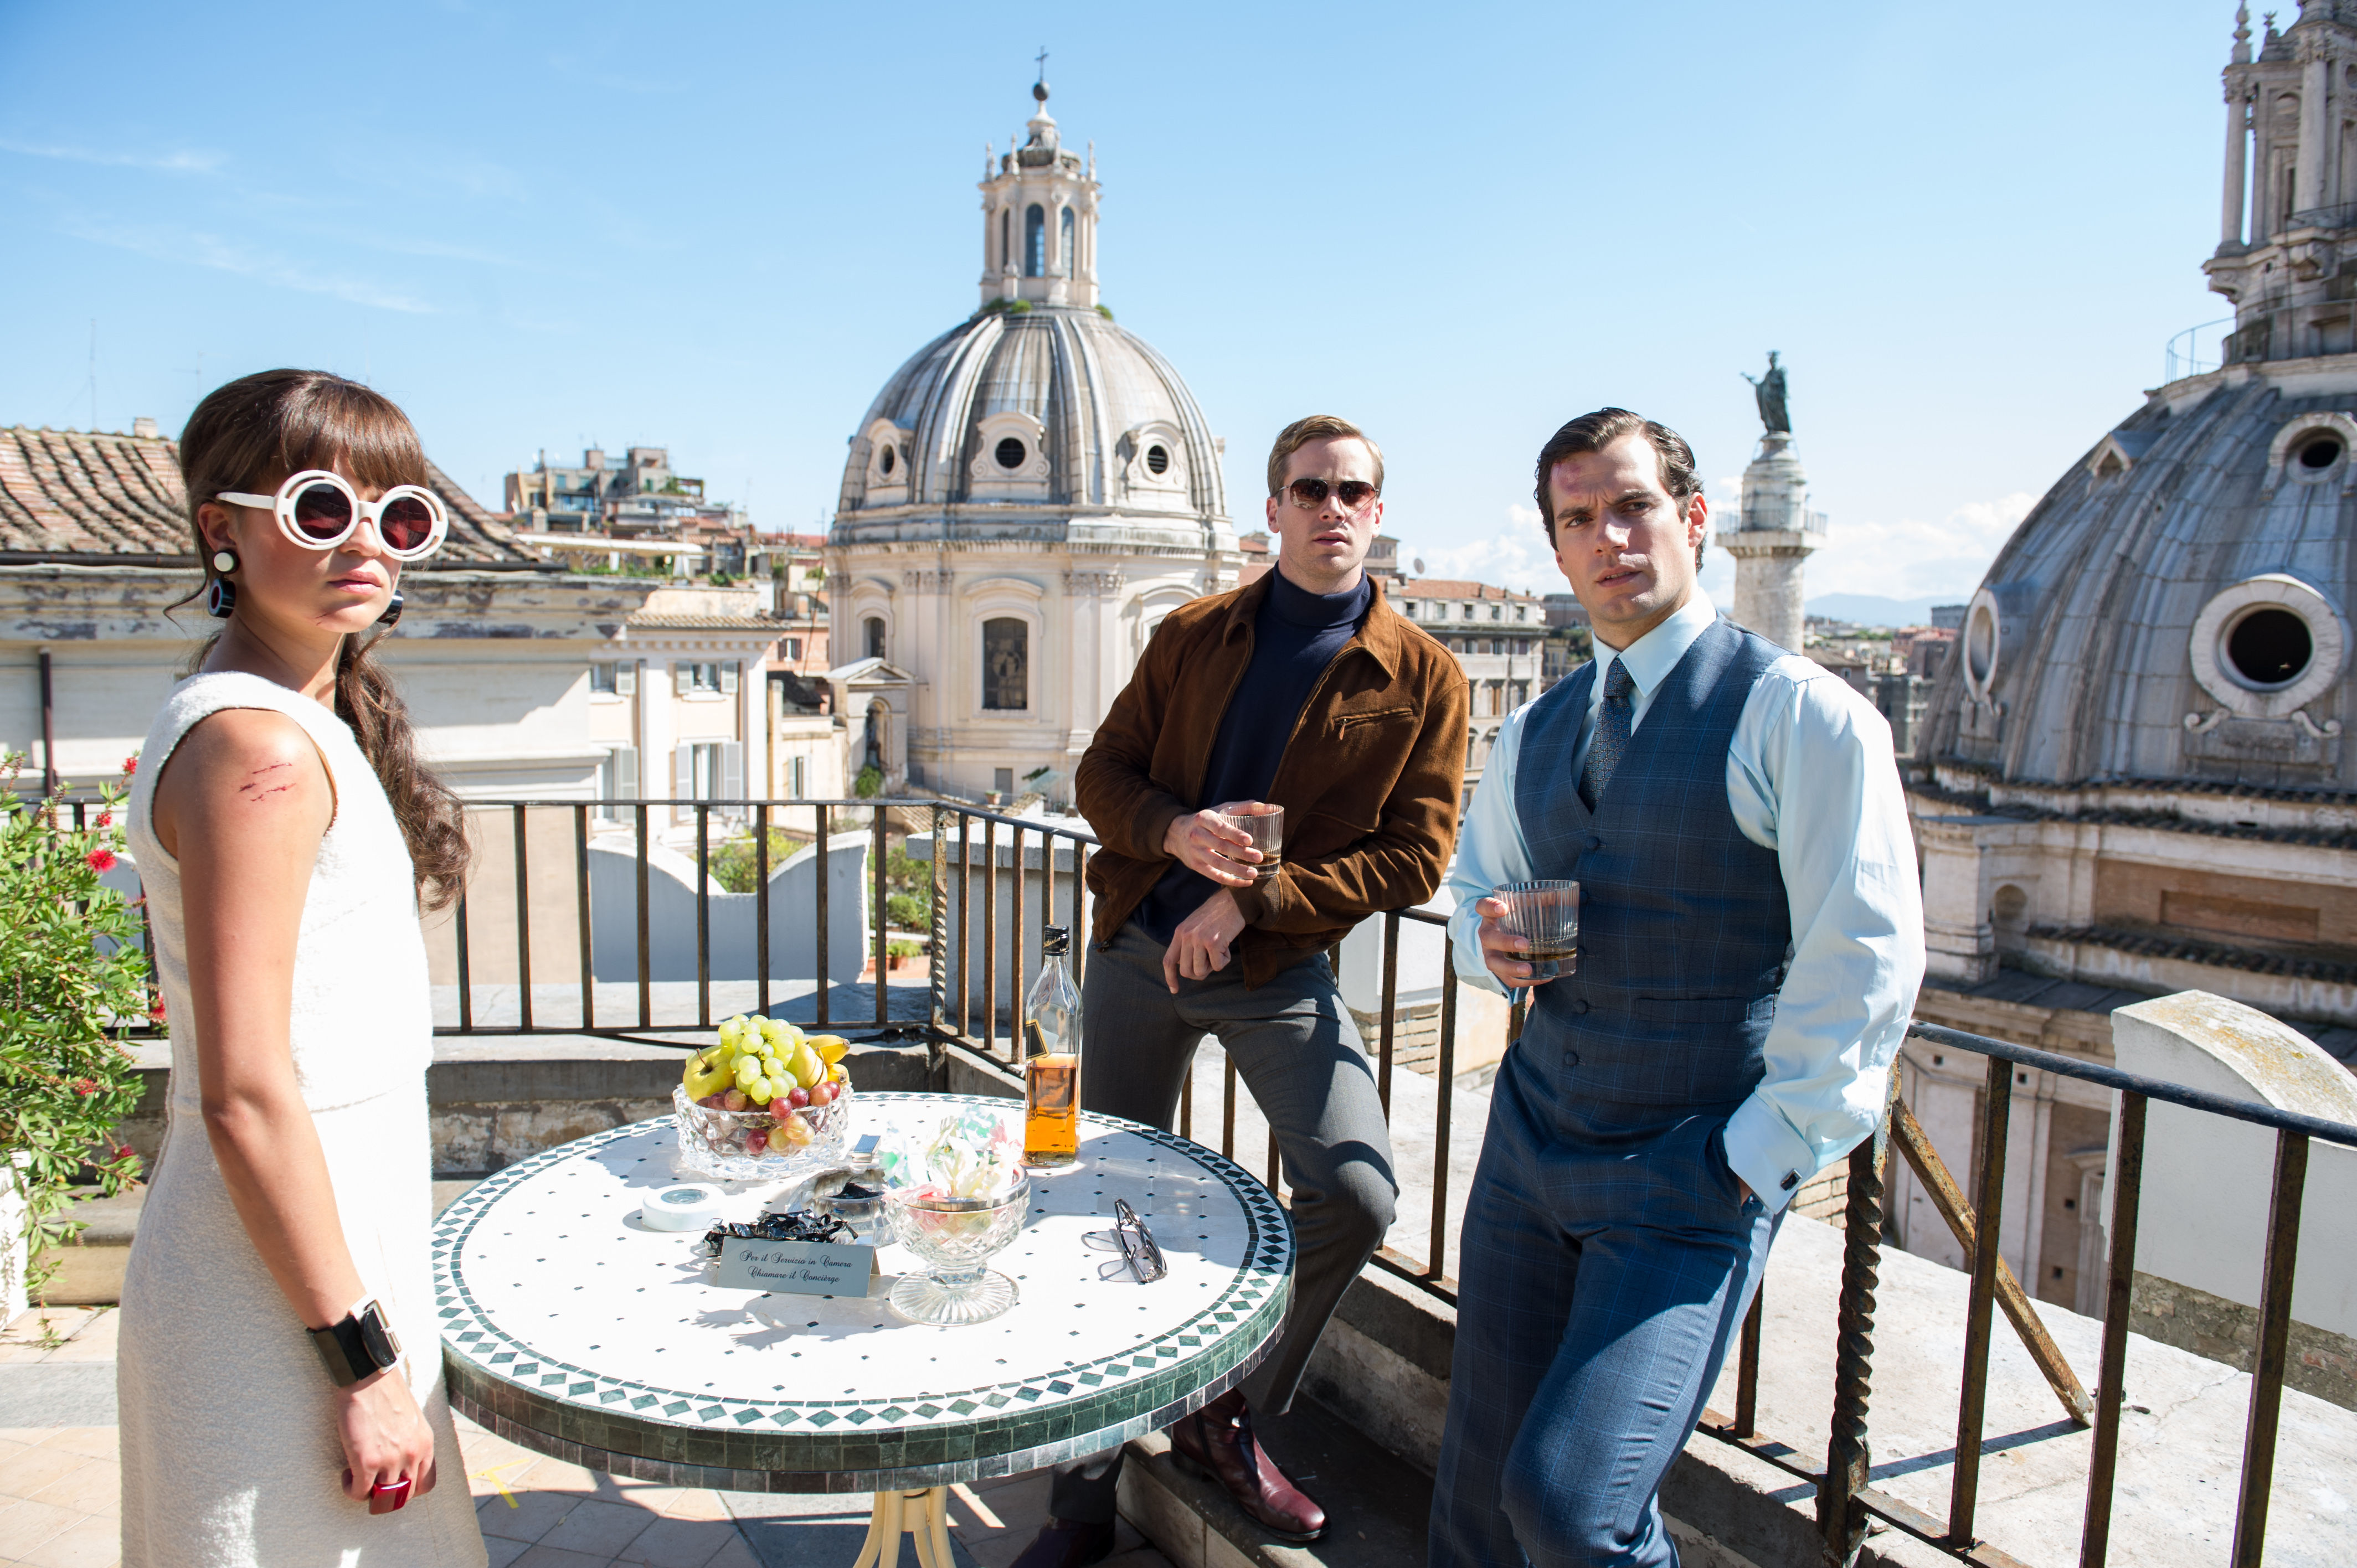 First trailer for Guy Ritchie's The Man From U.N.C.L.E movie